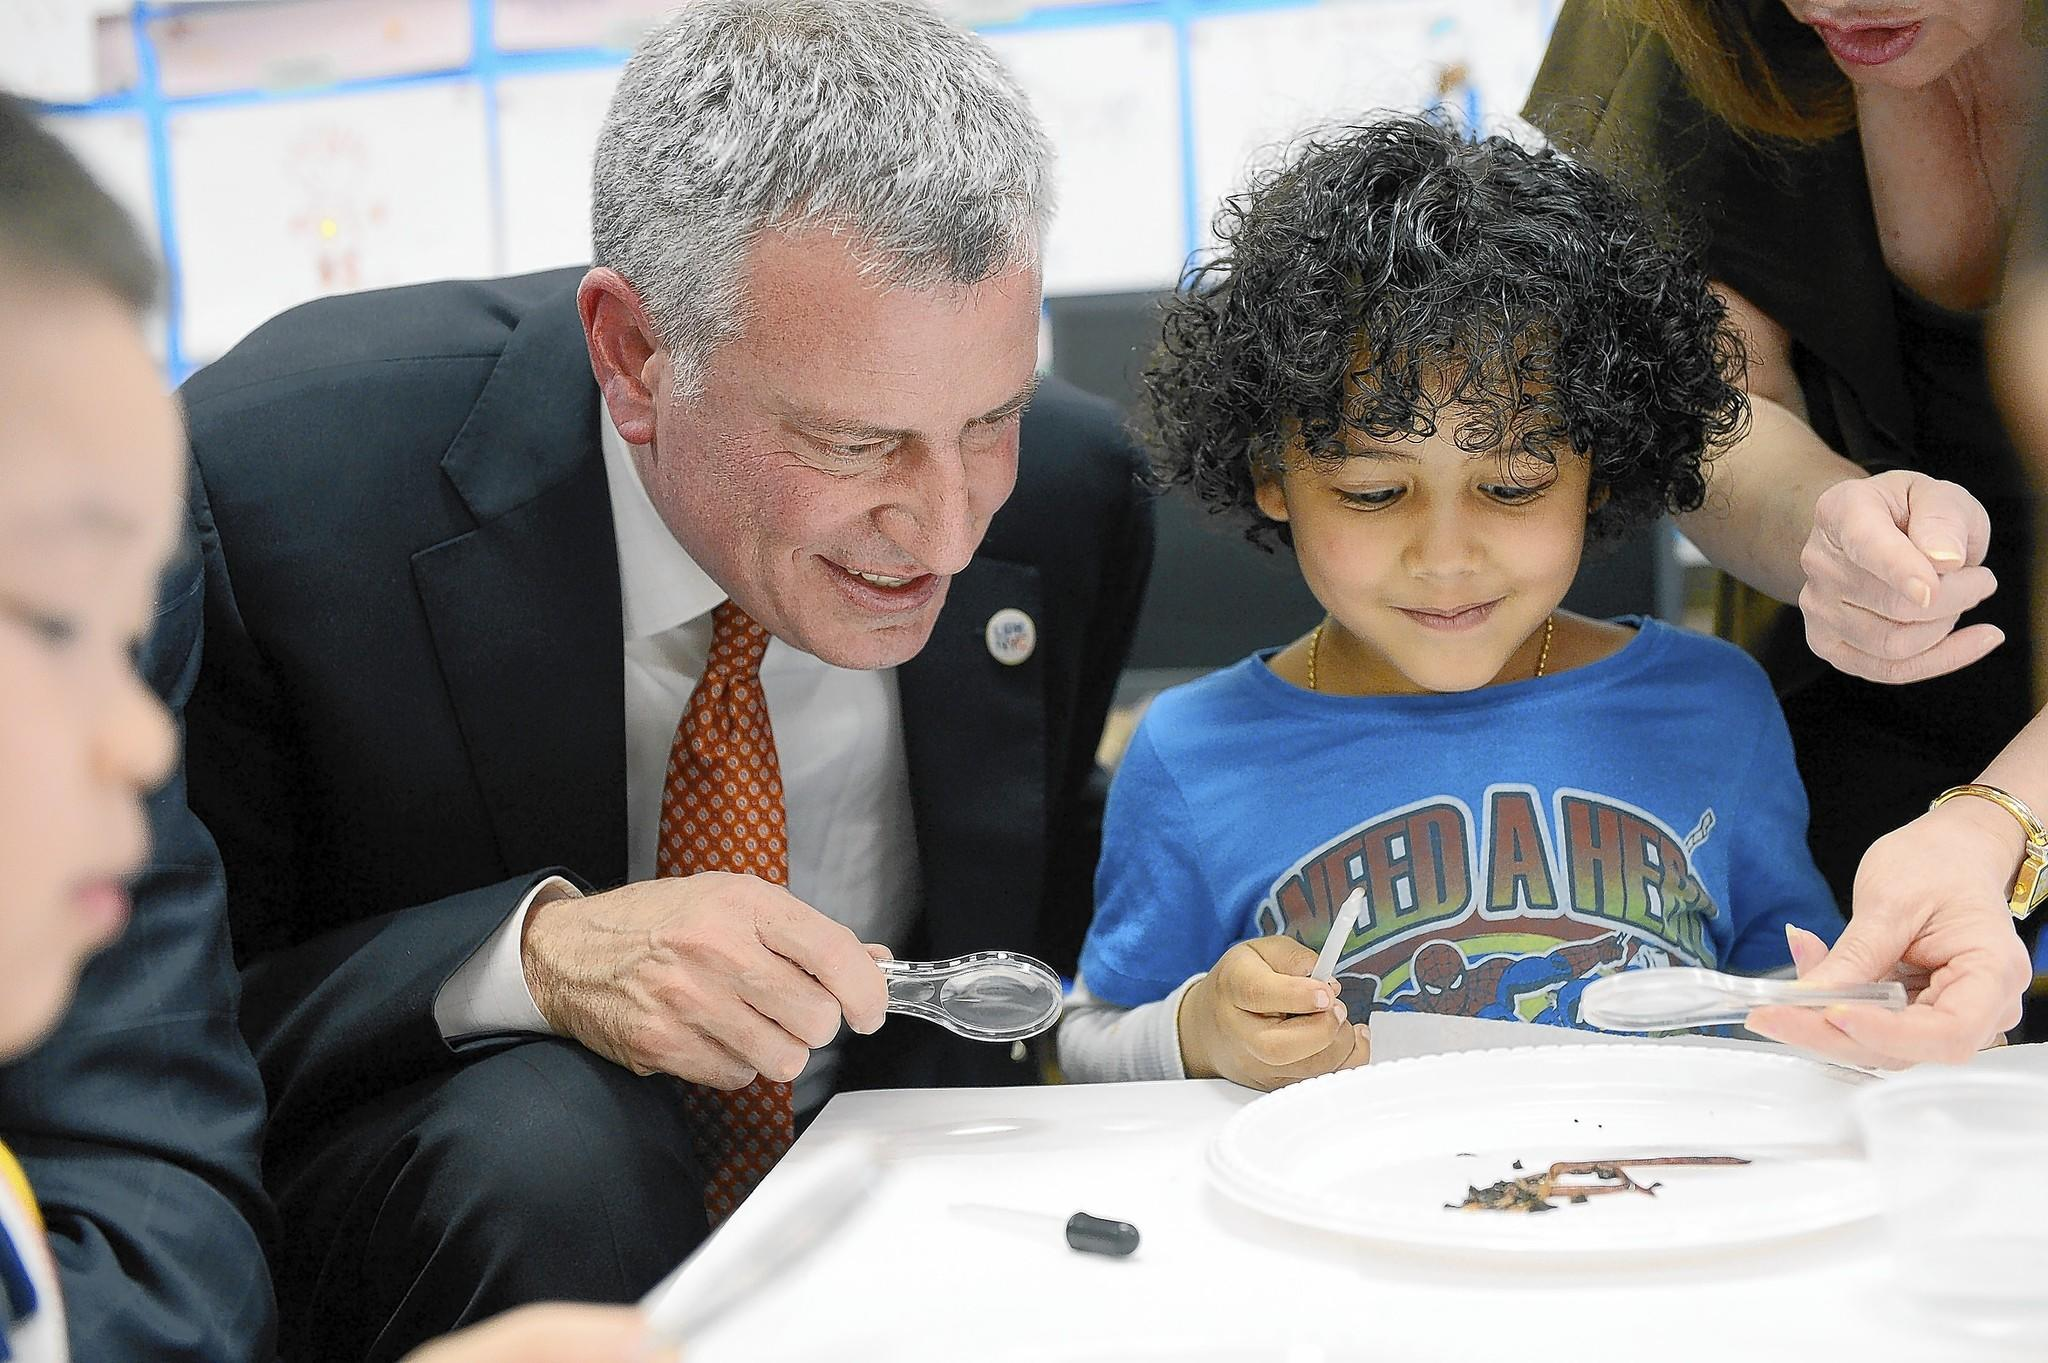 New York City Mayor Bill de Blasio works with student Justin De La Cruz on a science project at a pre-K class at P.S.1 in Manhattan. De Blasio has been fighting to rein in charter schools.